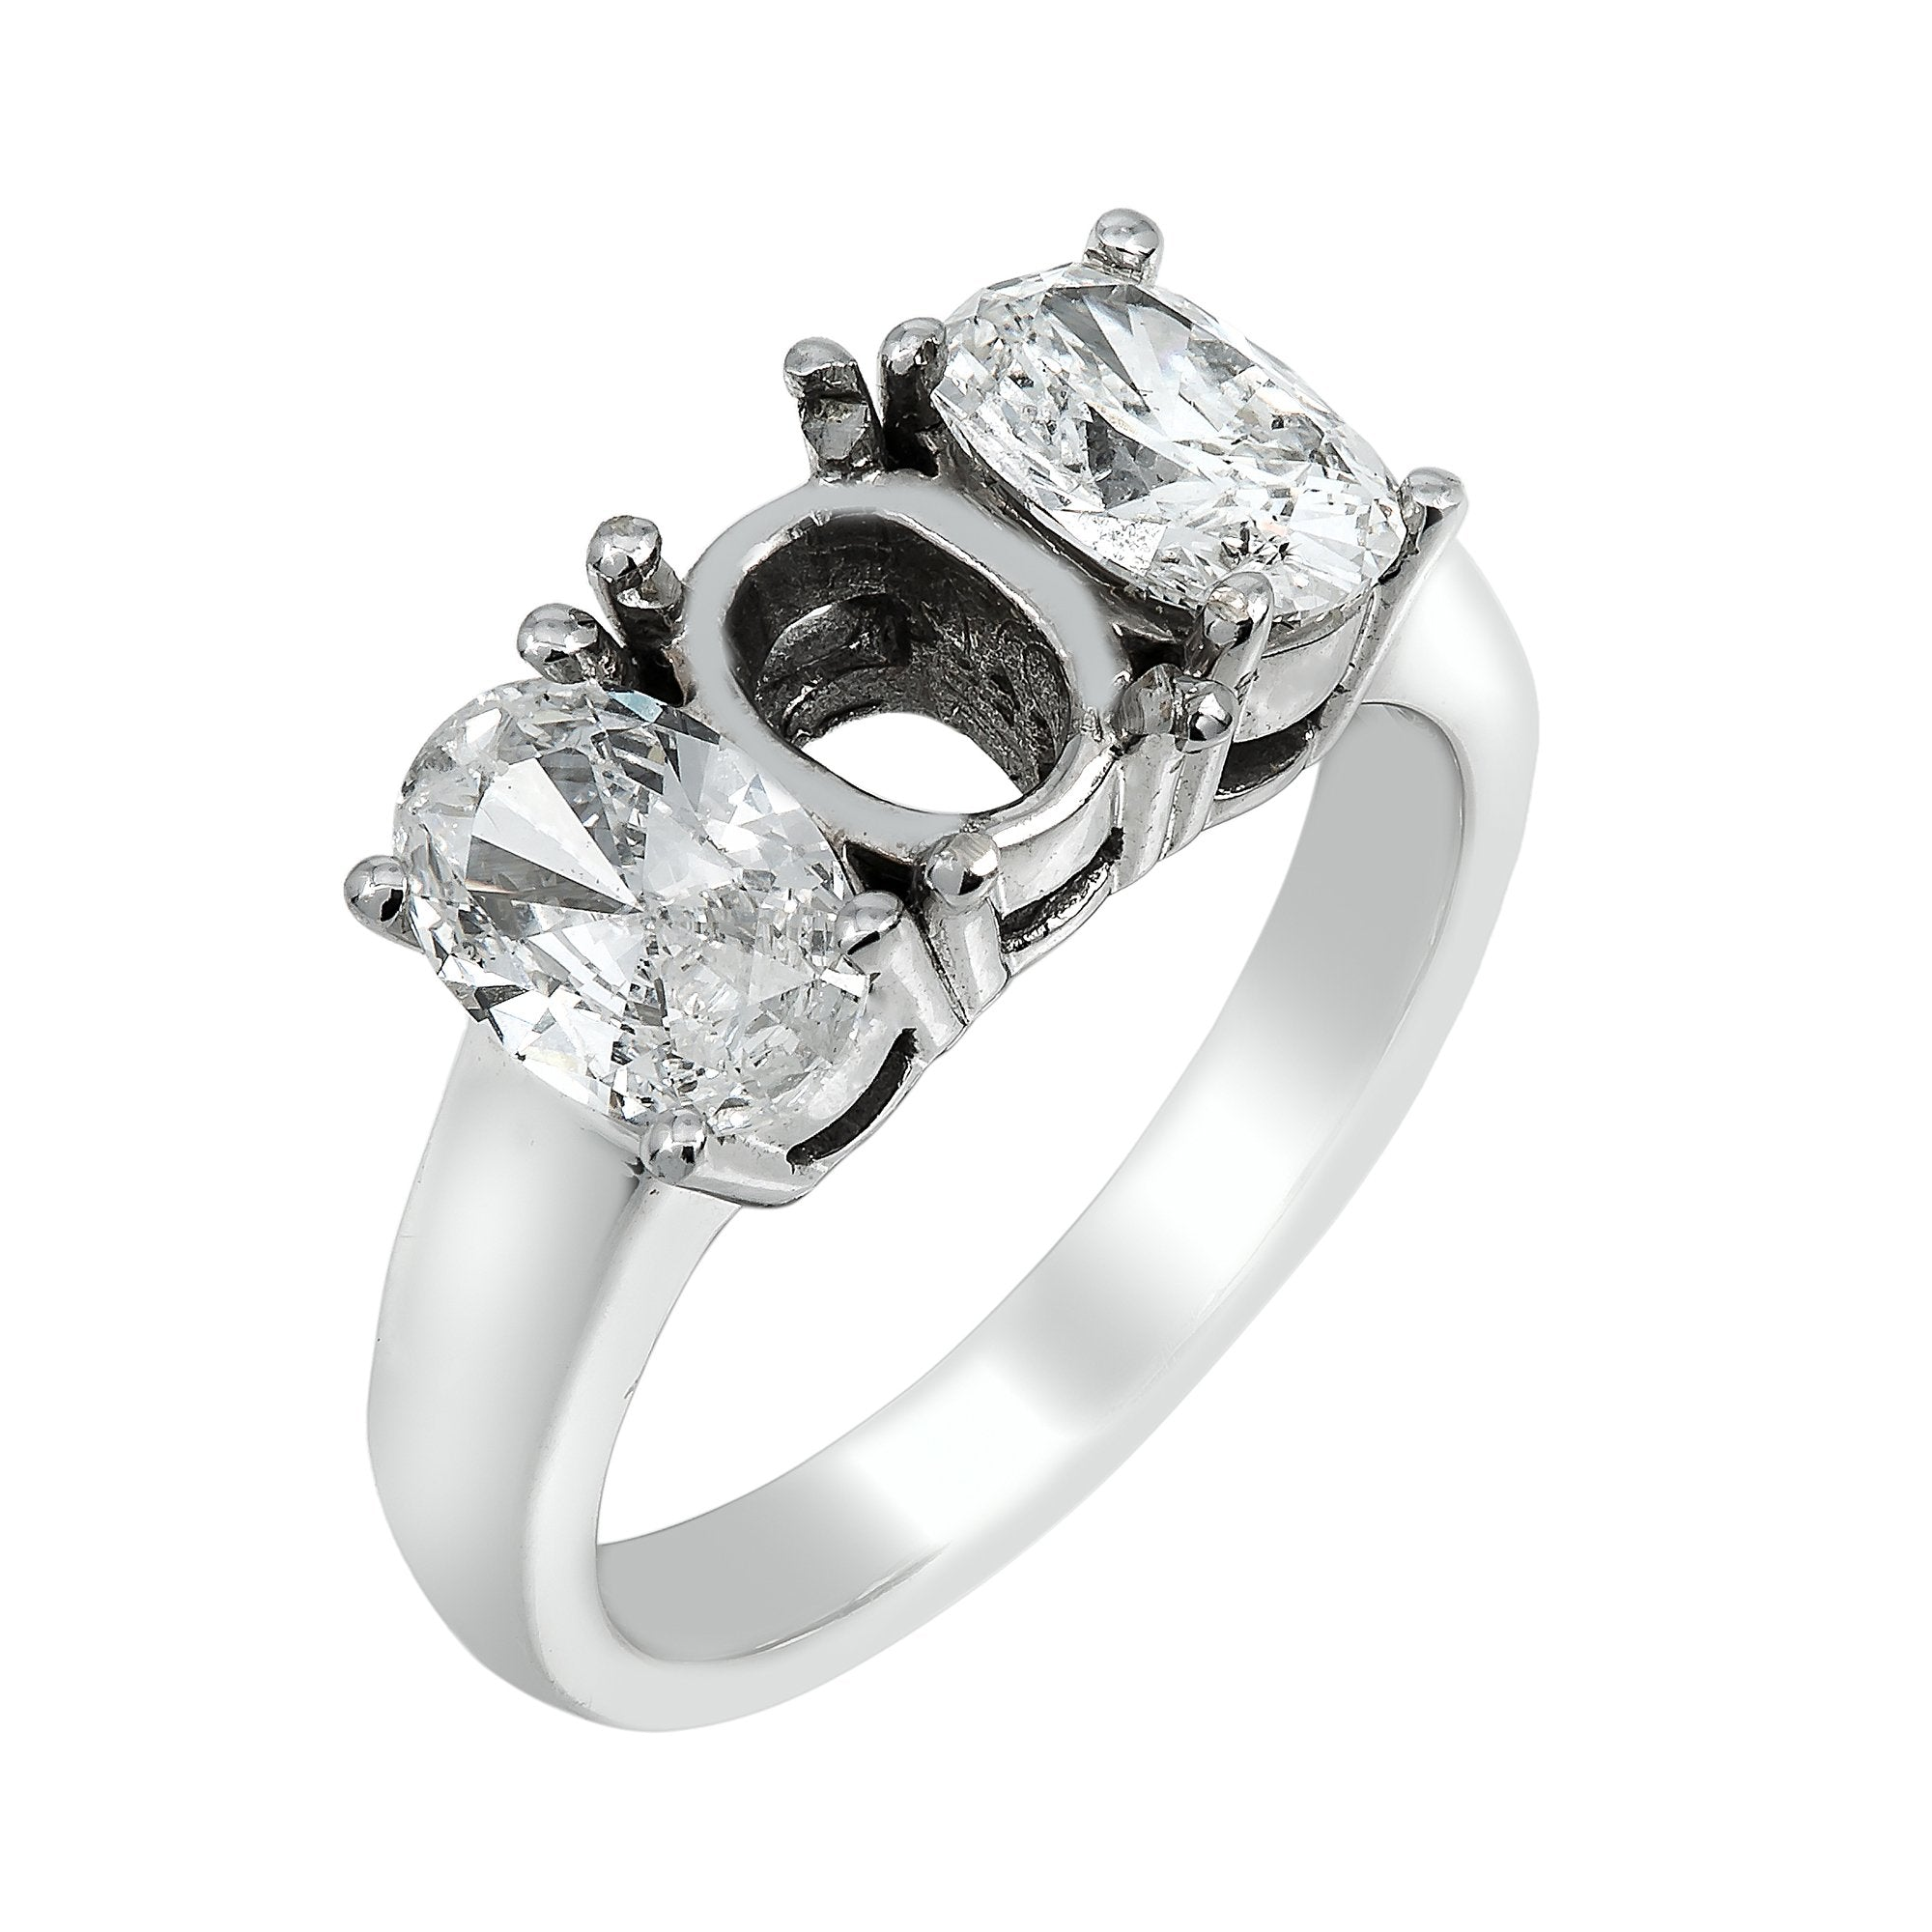 14K White Gold Diamond Engagement Semi-Mounting Women's Ring With 2.90 CT Diamonds